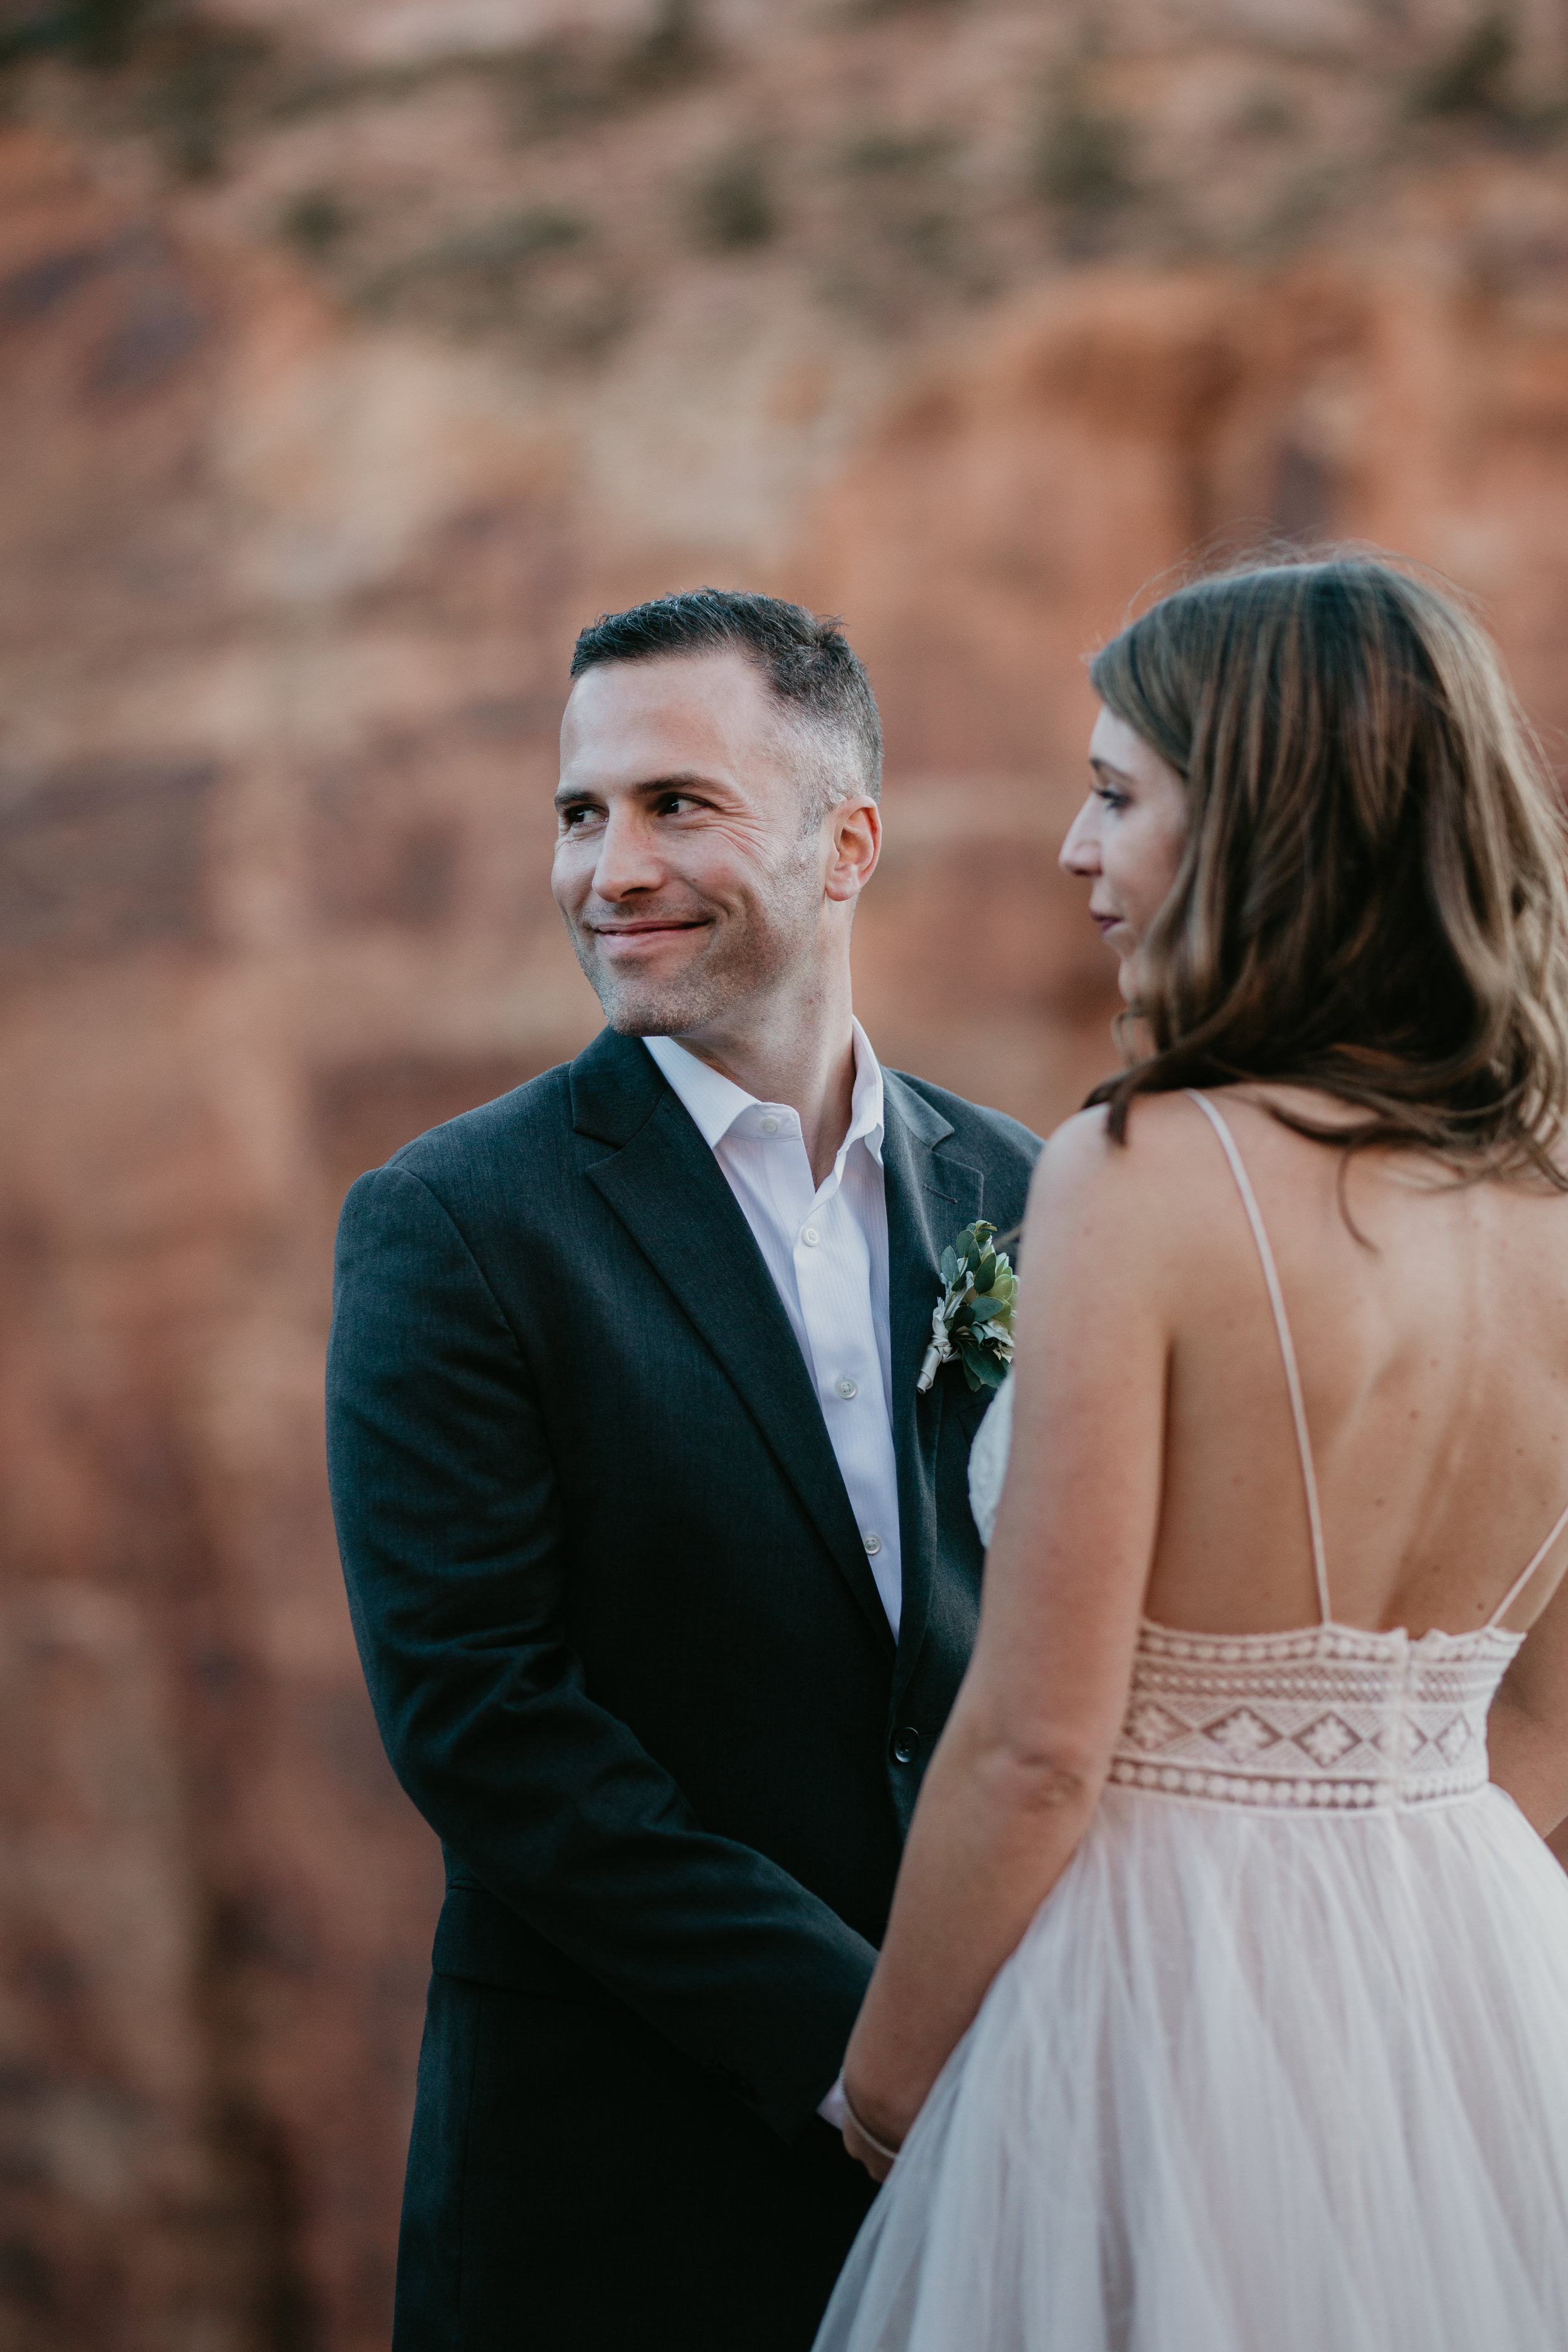 nicole-daacke-photography-zion-national-park-elopement-photographer-canyon-overlook-trail-elope-hiking-adventure-wedding-photos-fall-utah-red-rock-canyon-stgeorge-eloping-photographer-49.jpg